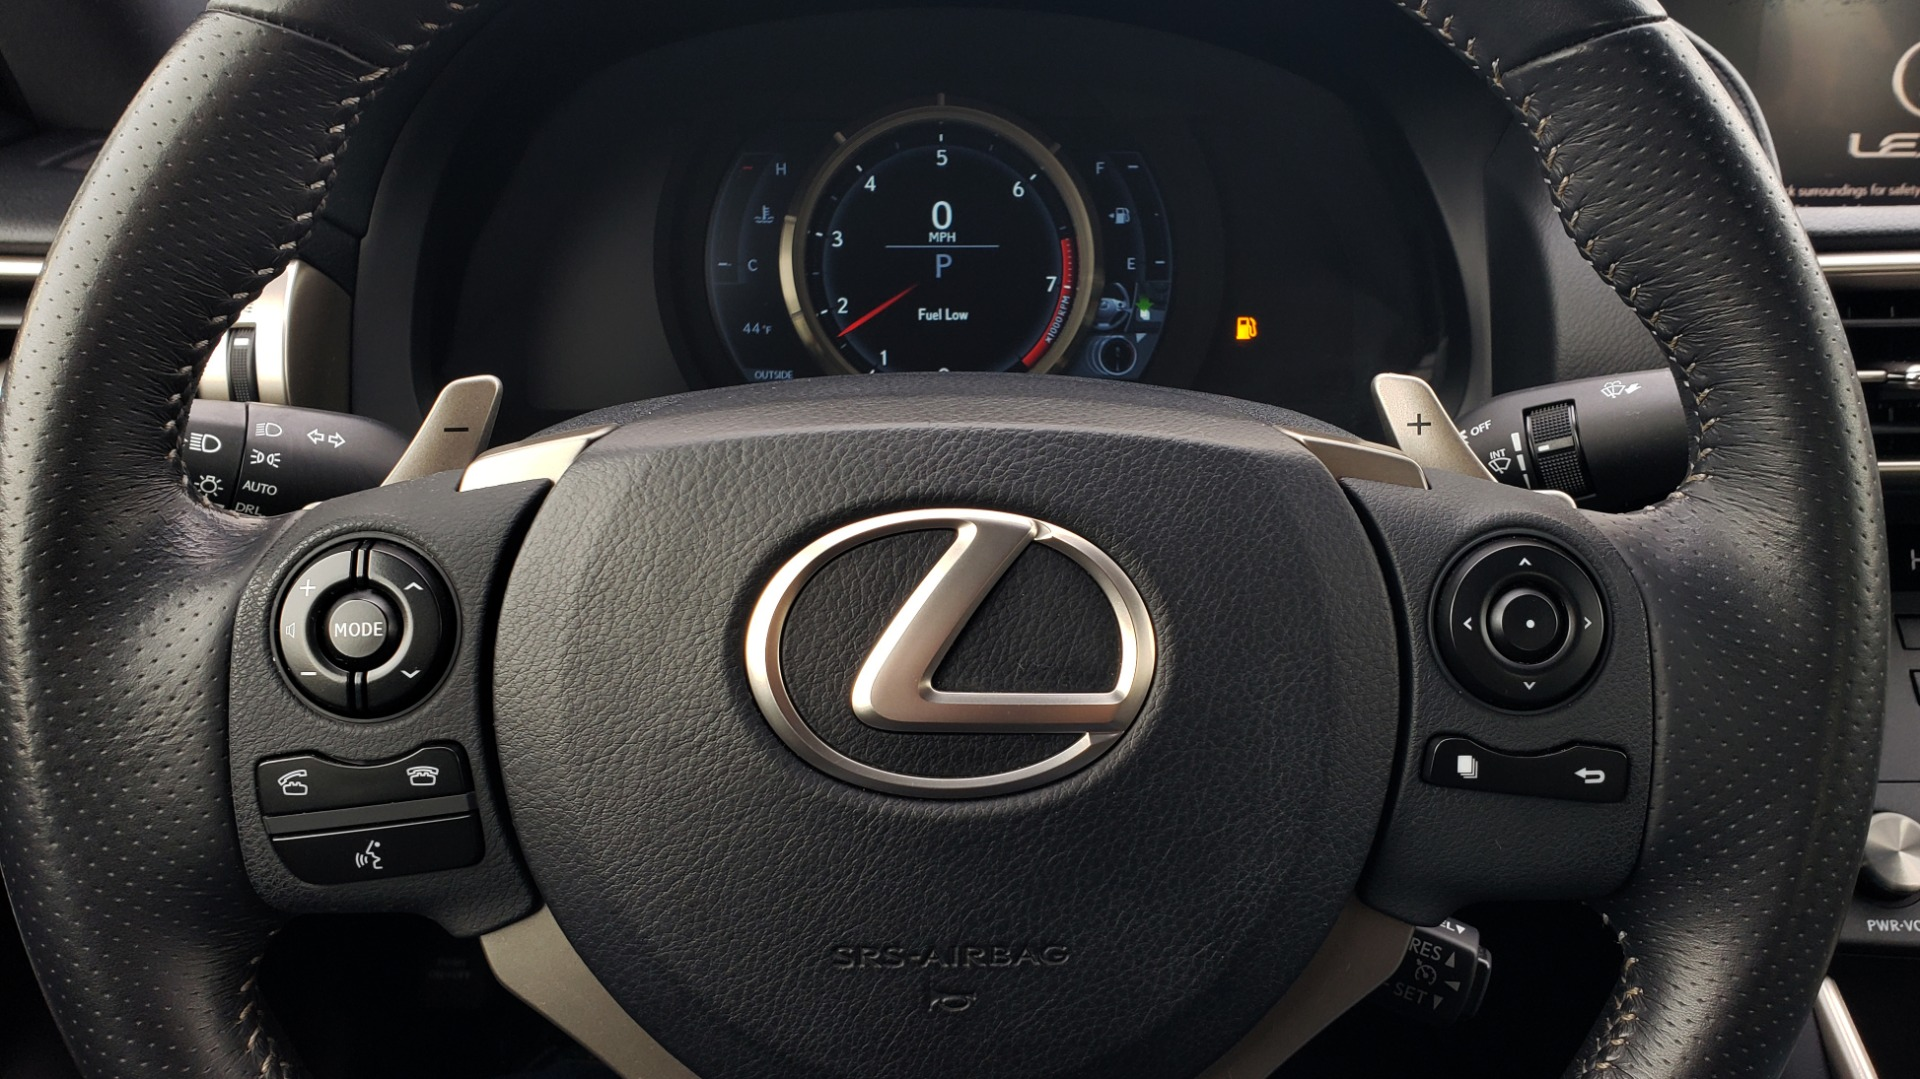 Used 2015 Lexus IS 250 F-SPORT / BLIND SPOT MON / SUNROOF / REARVIEW for sale Sold at Formula Imports in Charlotte NC 28227 38